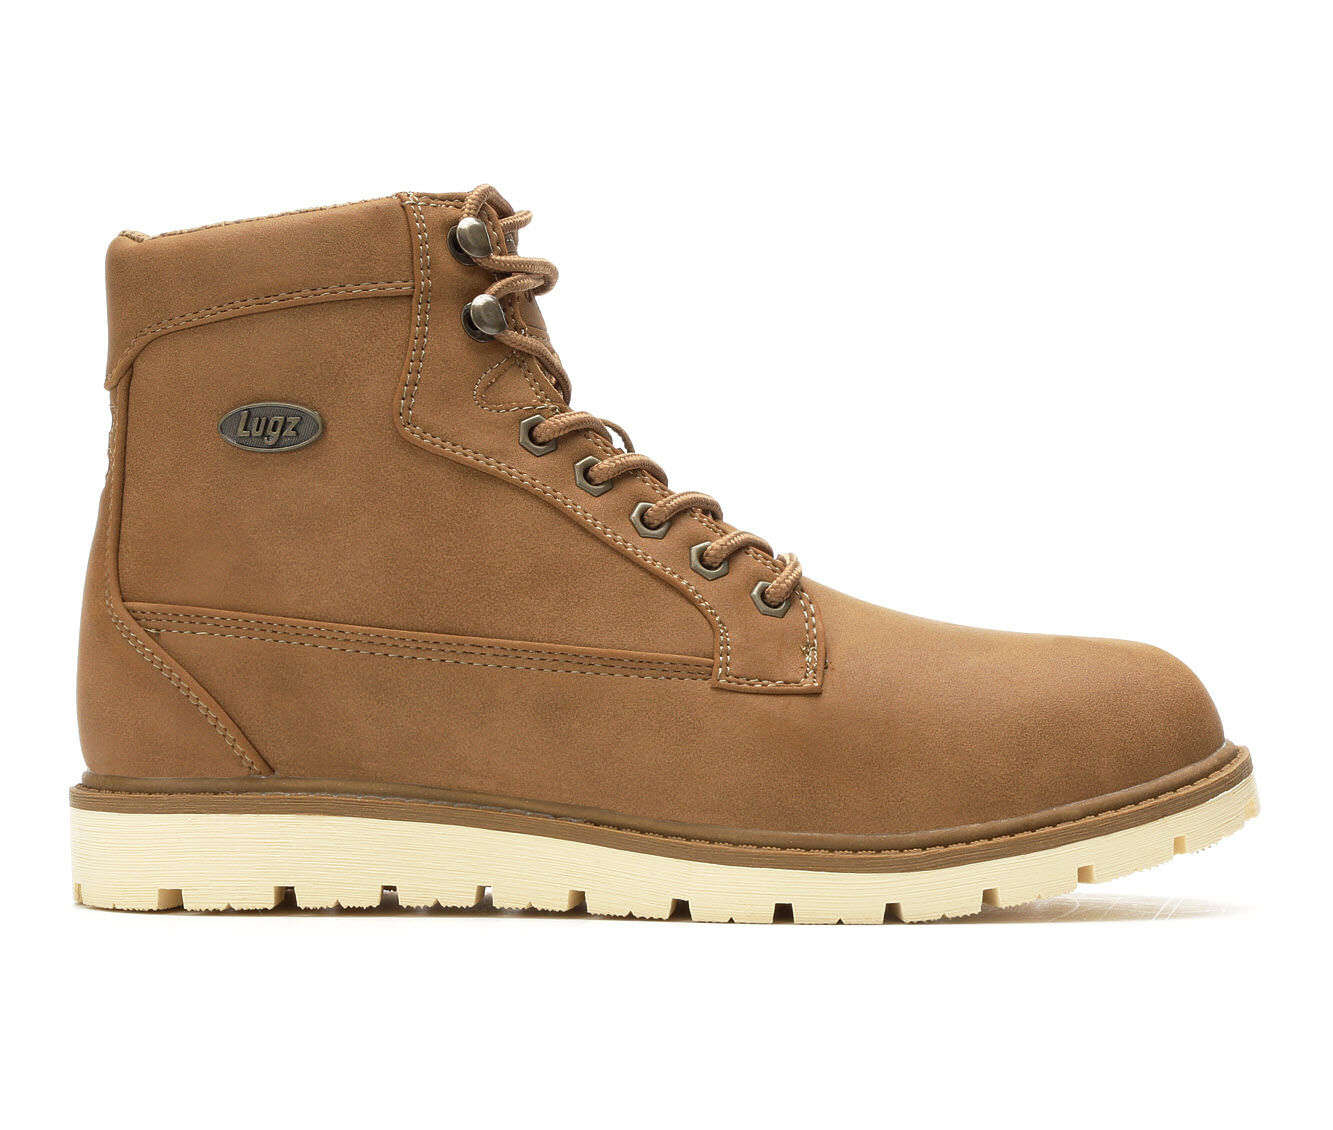 Online Cheap Men's Lugz Bedrock Hi Boots Dk Tan/Bone